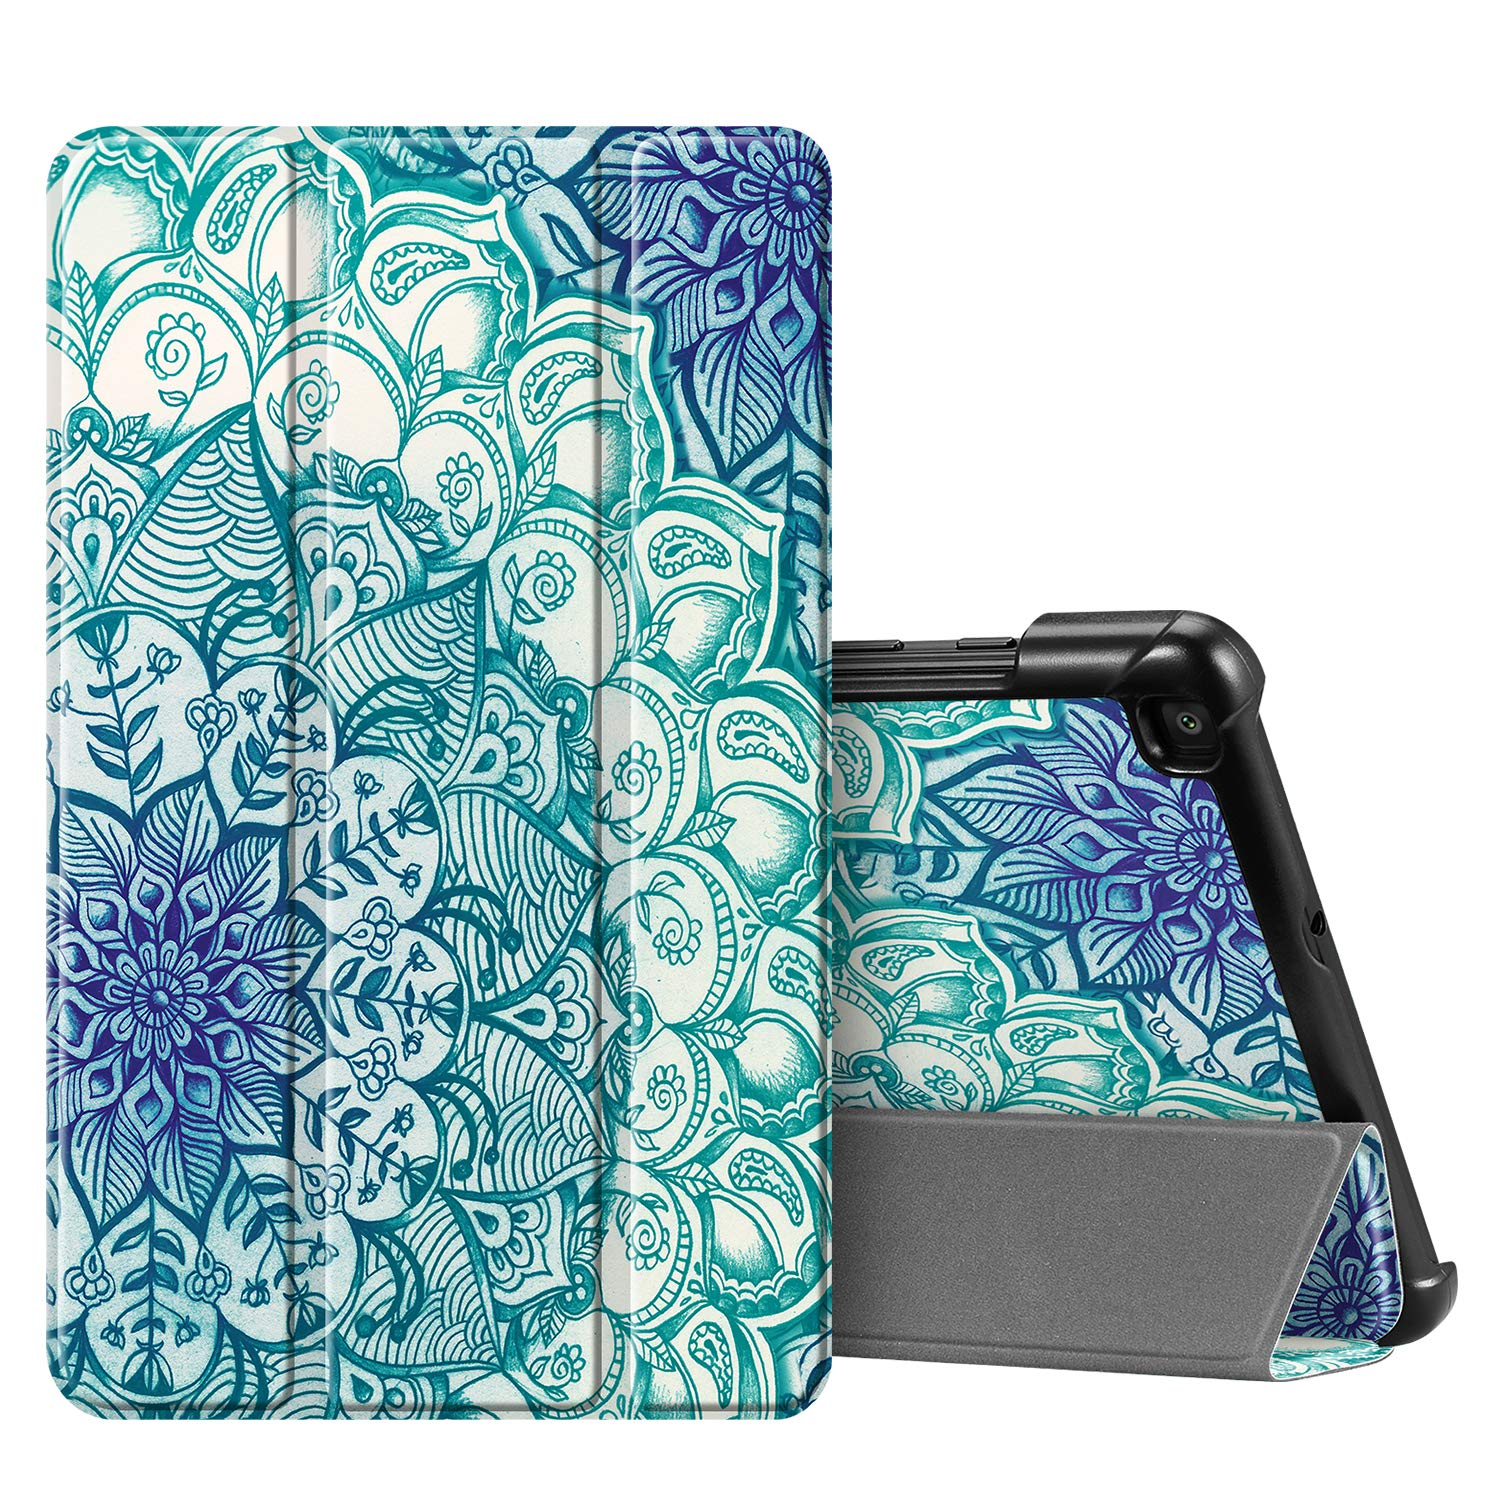 FINTIE SlimShell Case for Samsung Galaxy Tab A 8.0 2019 (SM-T290 / SM-T295), Super Thin Lightweight Magnetic Stand Cover for Samsung Galaxy Tab A8 8-Inch Tablet, Emerald Illusions